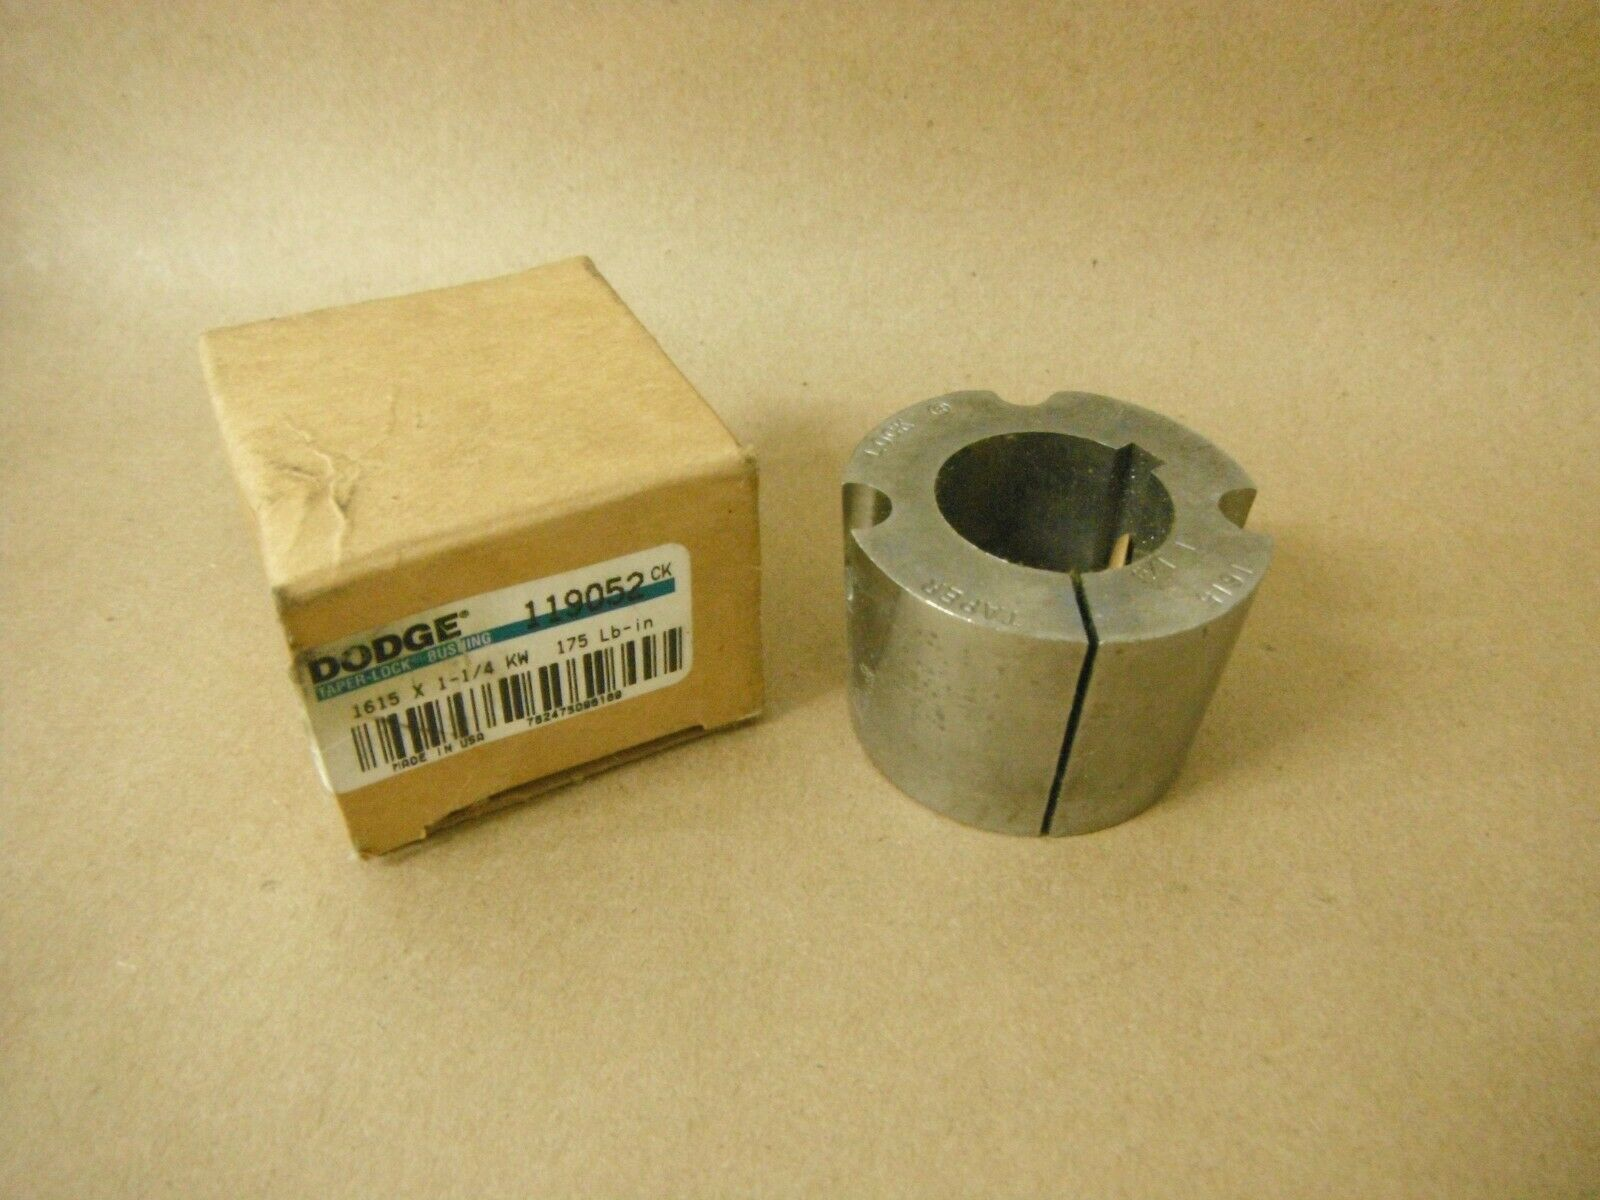 Primary image for 119052 DODGE 1615 X 1-1/4 KW TAPER LOCK BUSHING